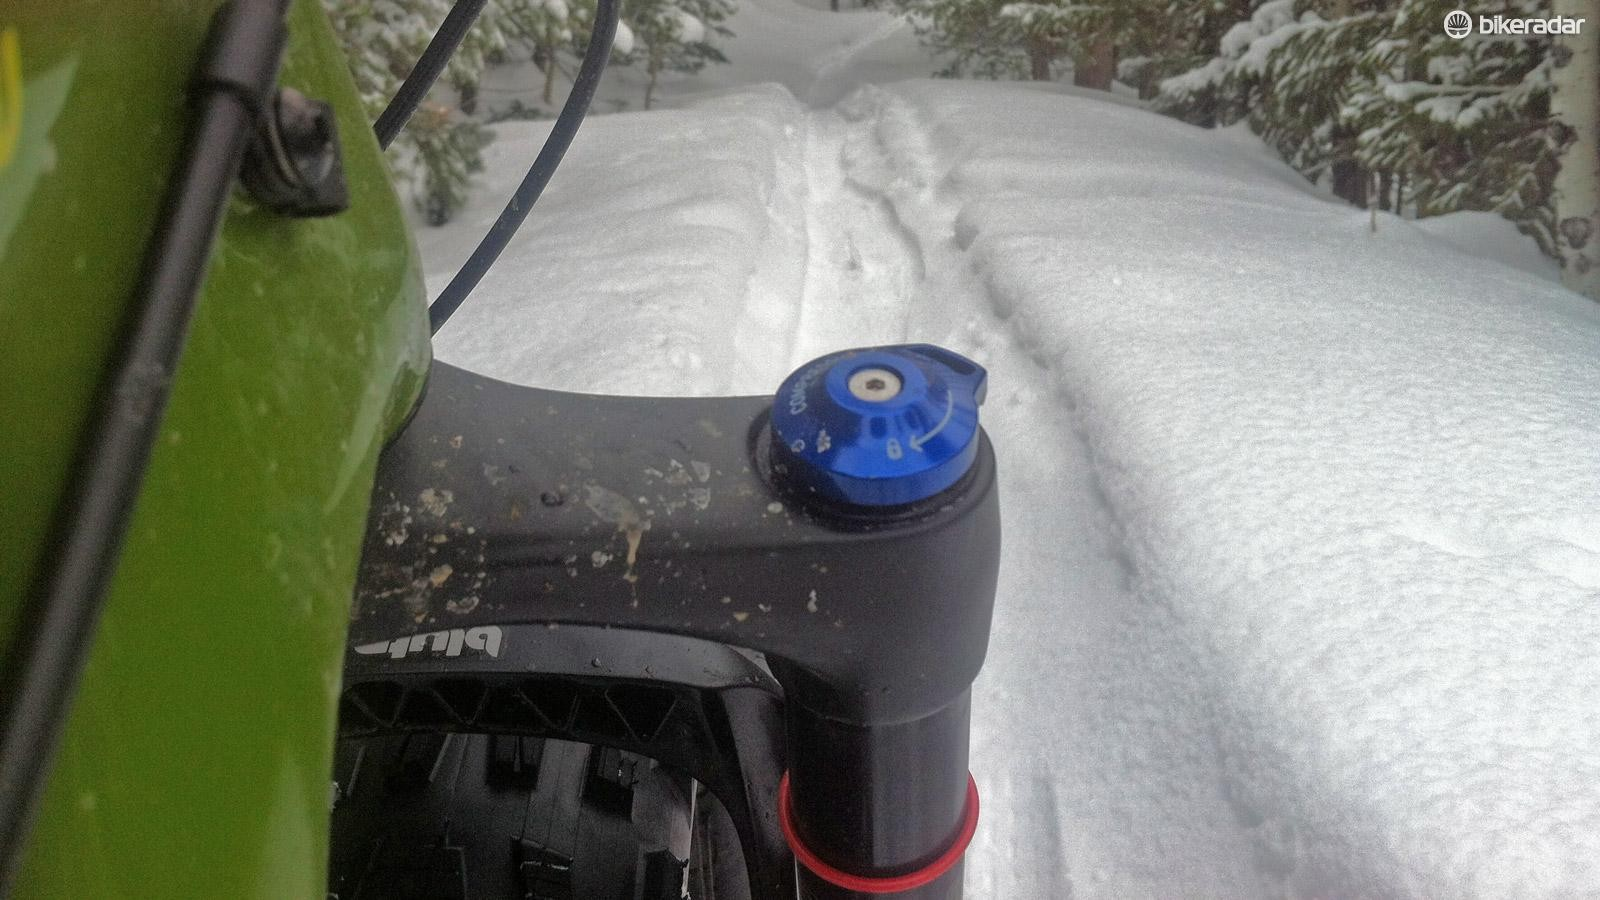 Russell's local trails are snowpacked